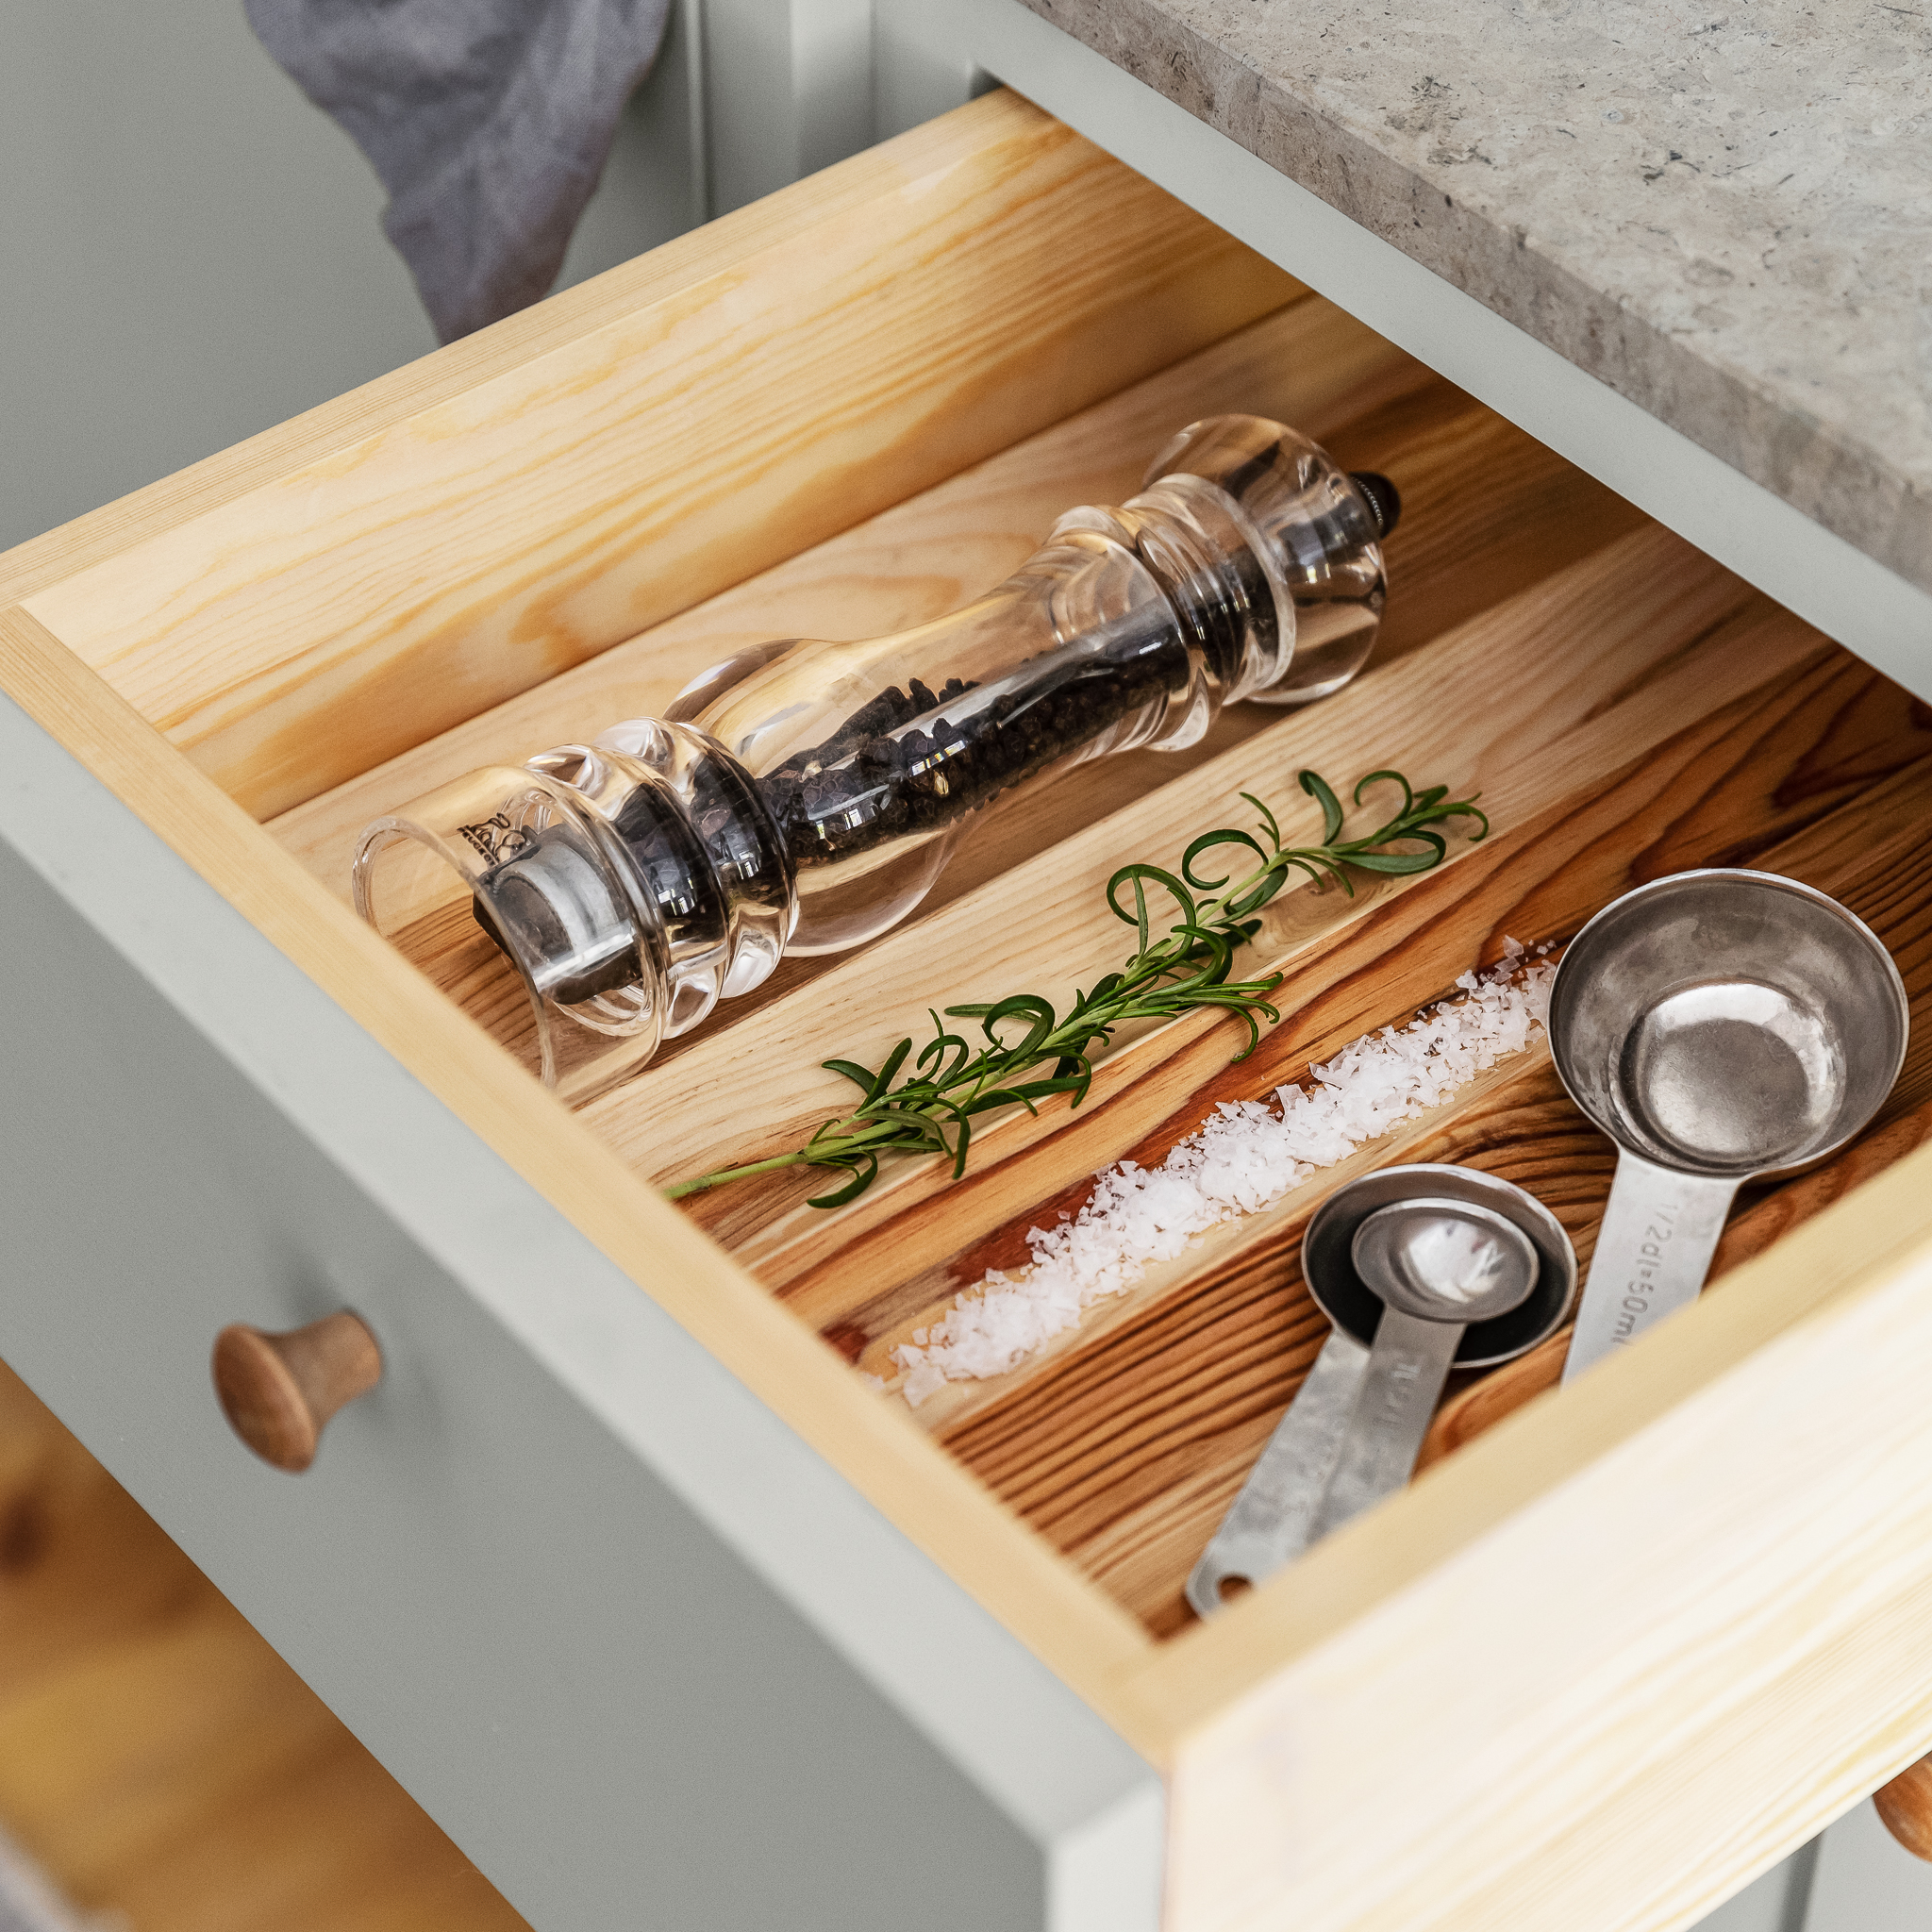 Cutlery divider for spices from Scandinavian Shaker Kitchen